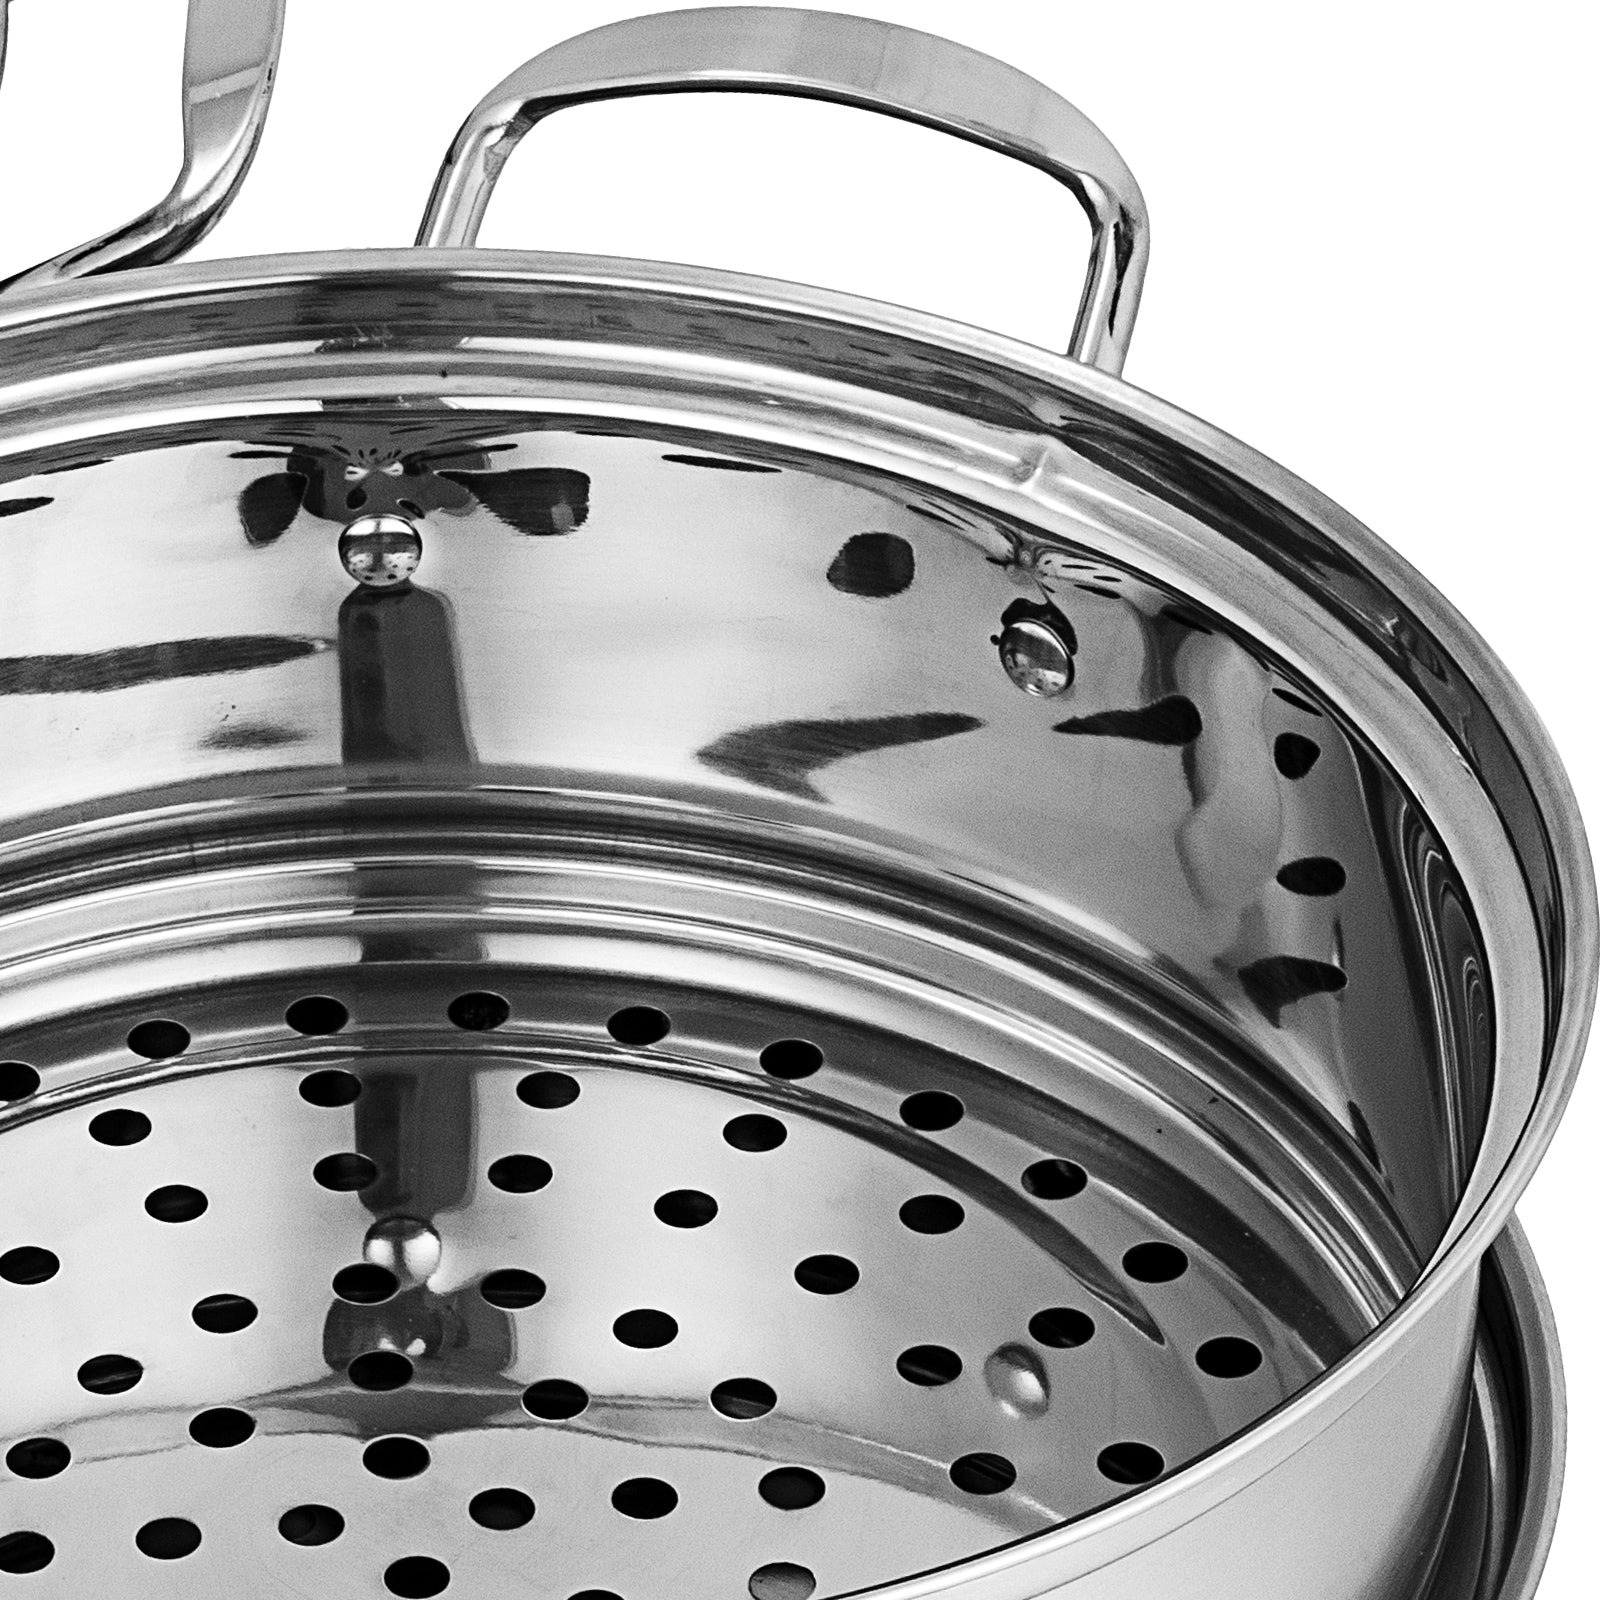 12'' Food Steamer Food Steaming Machine Cookware 5 Tier Stainless Steel ∅30cm